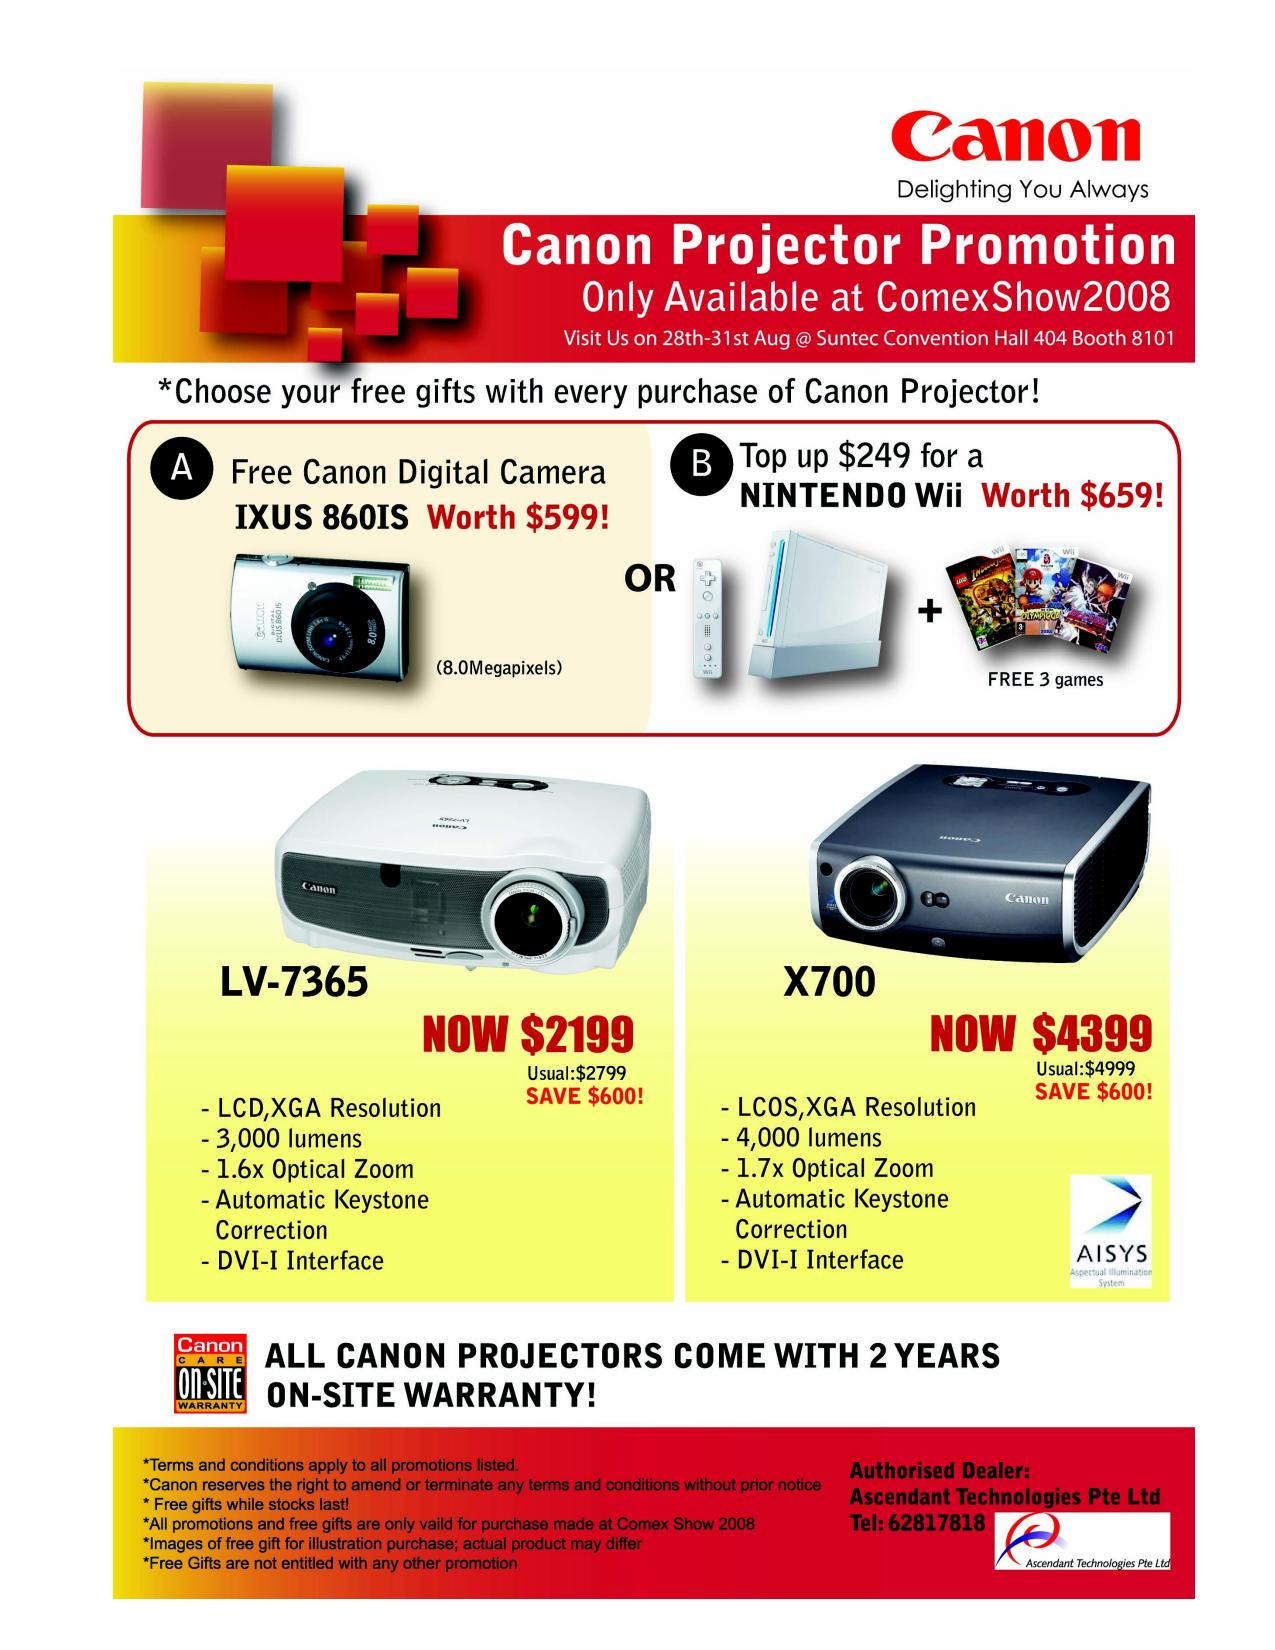 Comex 2008 price list image brochure of Canon Projector.pdf 02